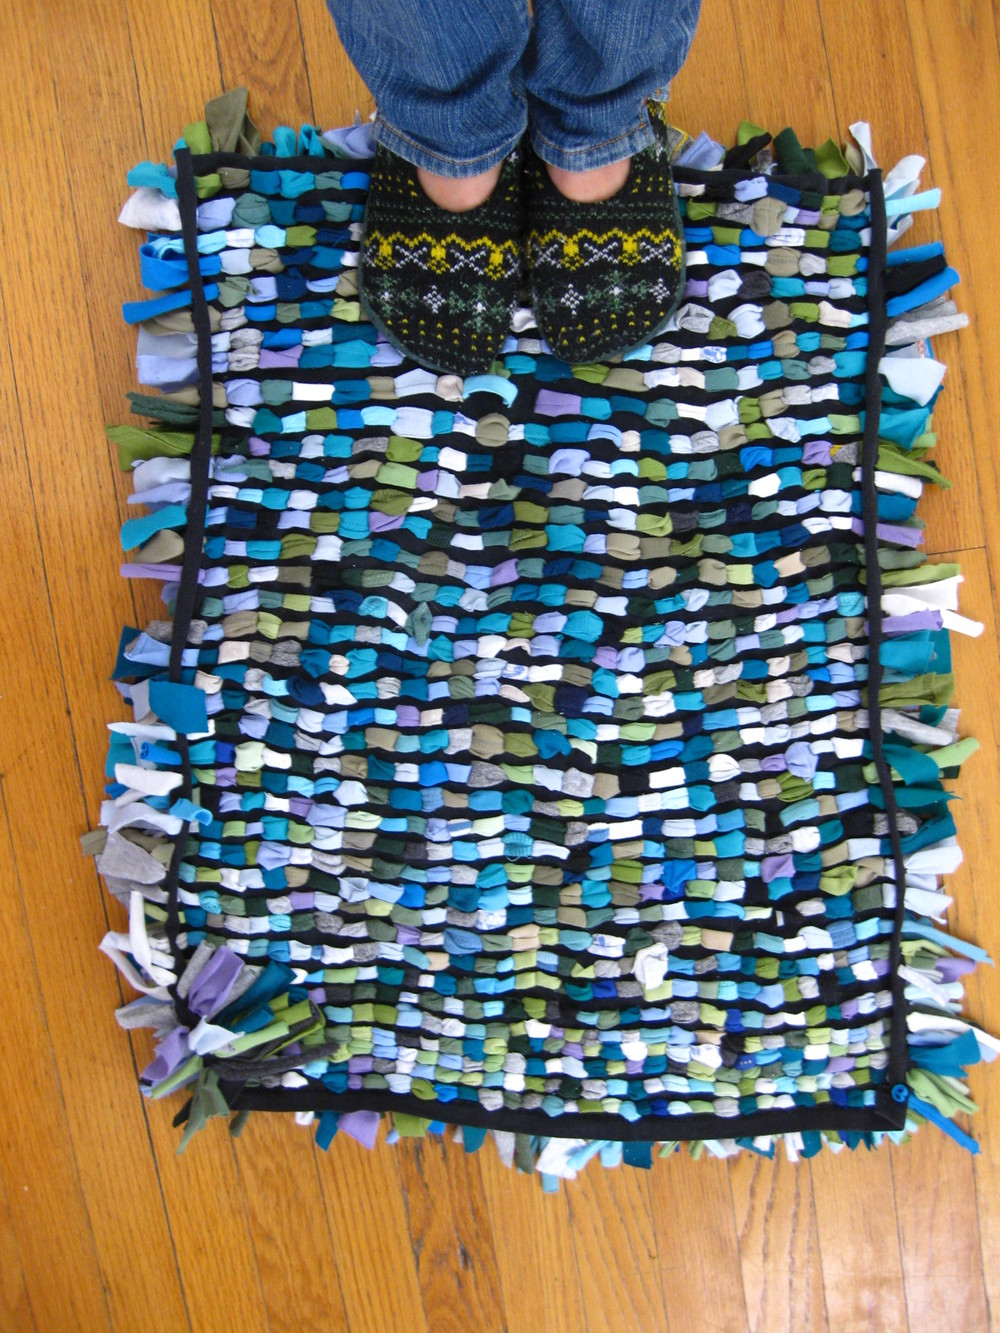 Shag rug made from old t-shirts